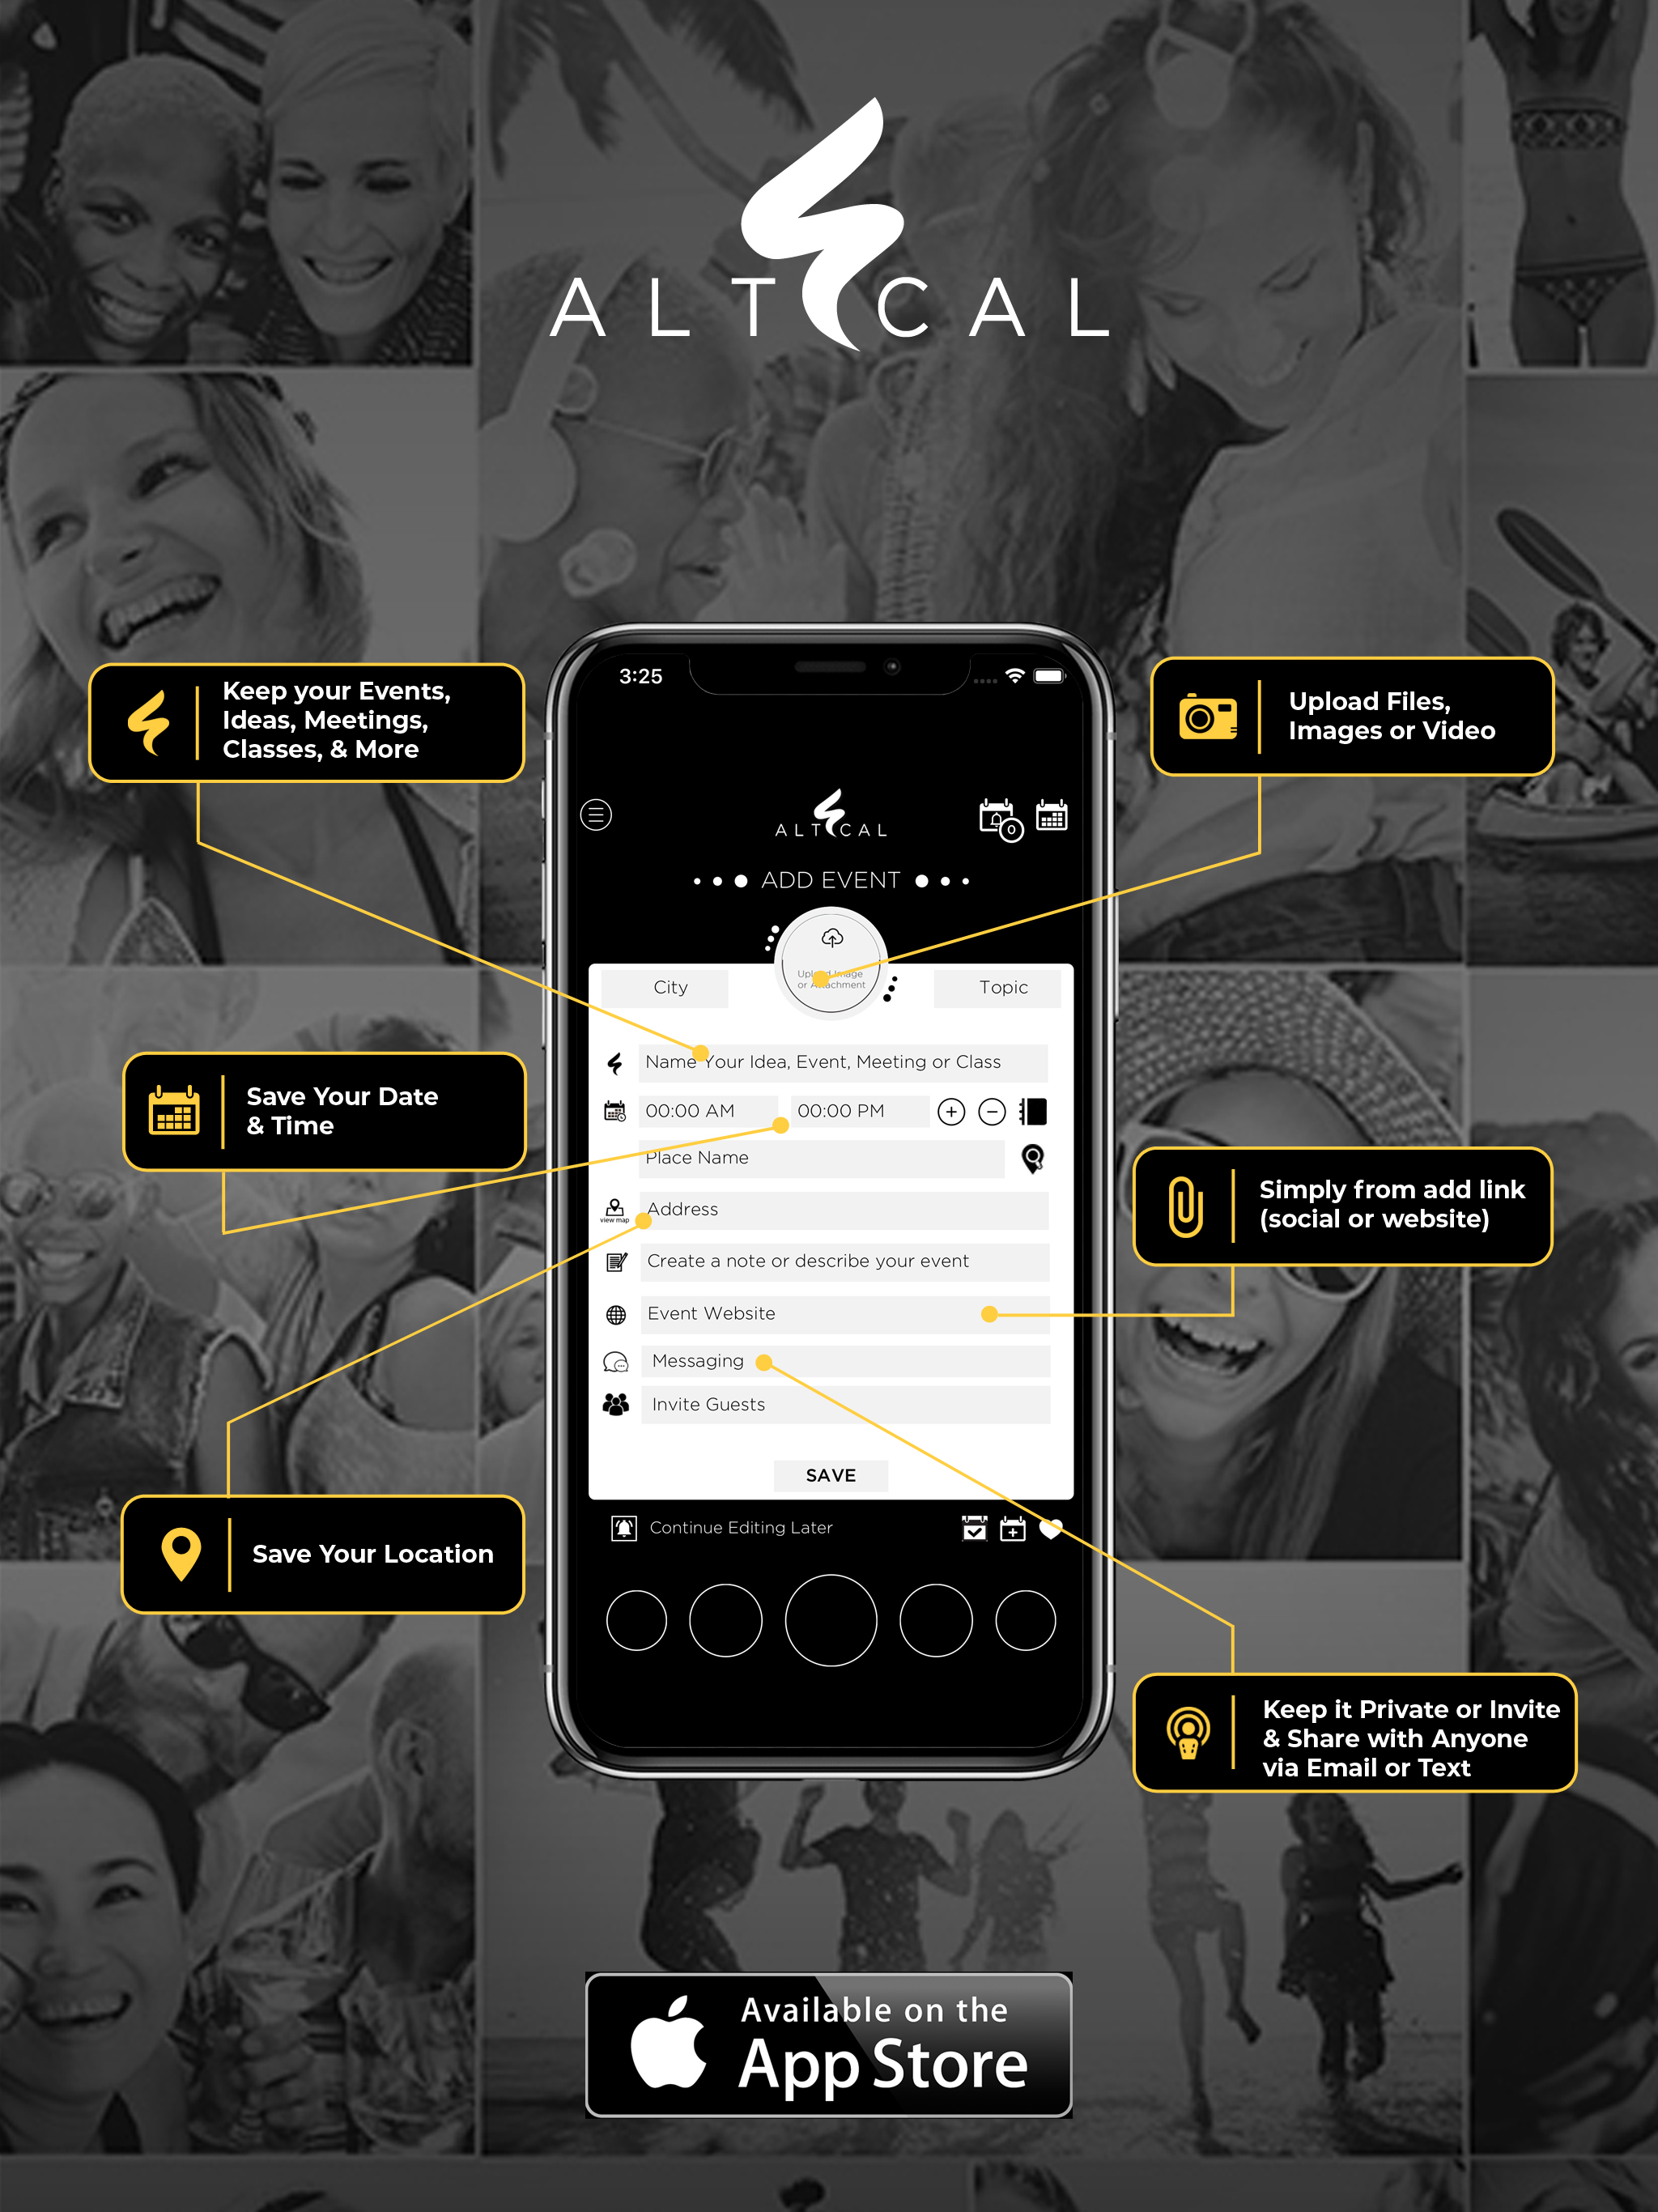 AltCal is now among the 2021 top popular agenda choices on the App Store